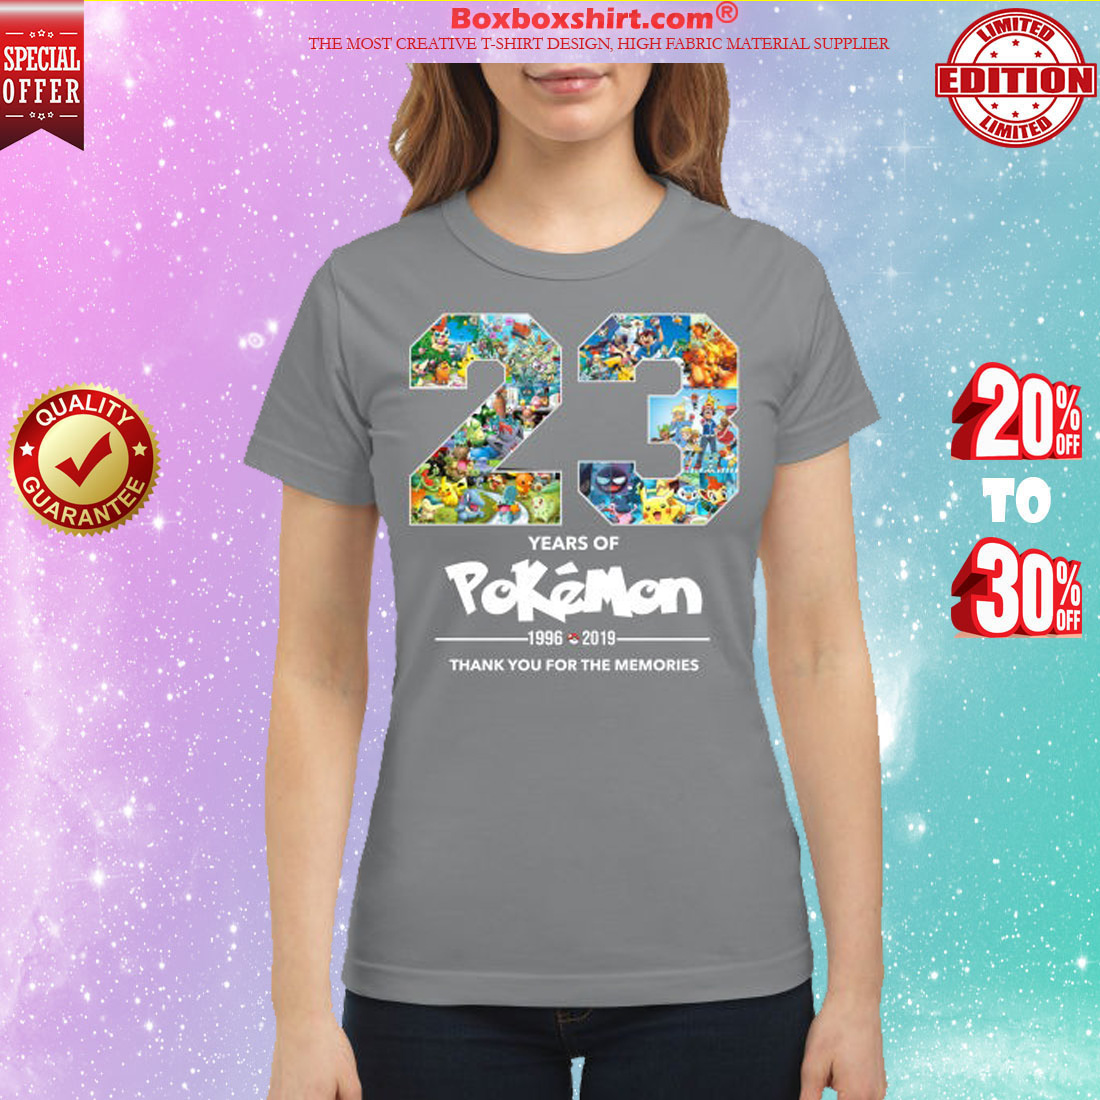 23 years of Pokemon 1996 2019 thank you for memories classic shirt